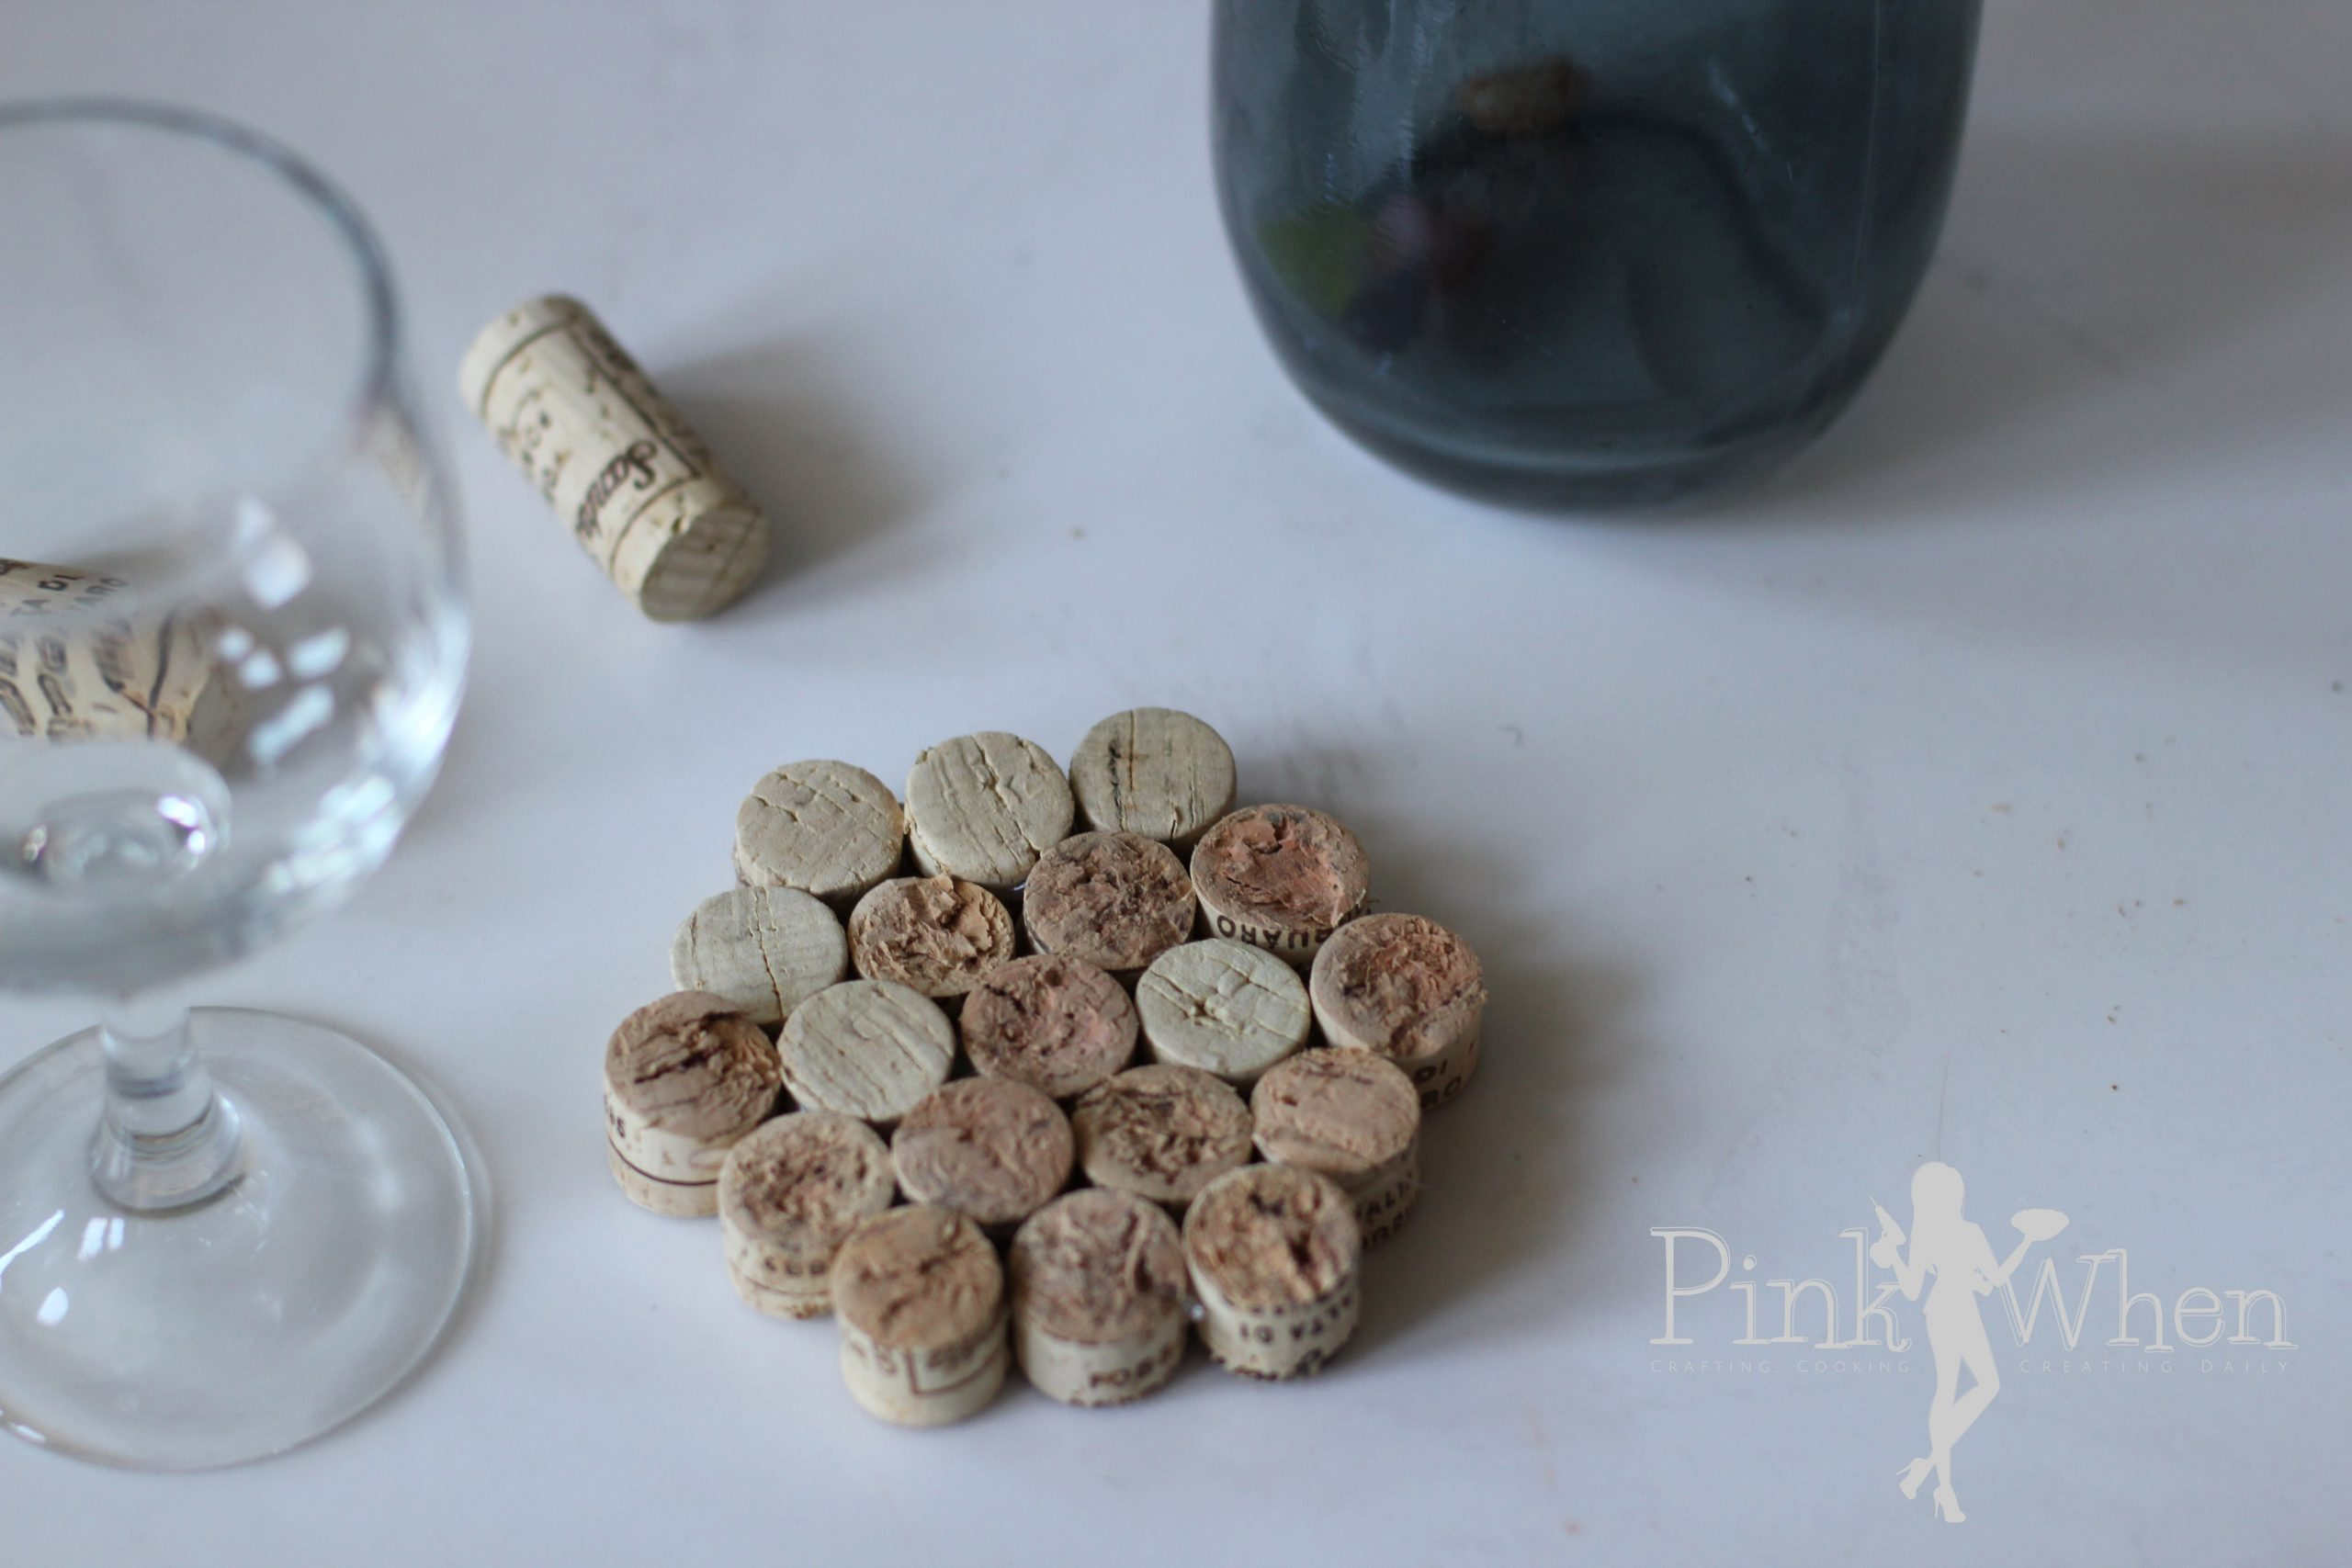 DIY Wine Cork Drink Coaster Tutorial